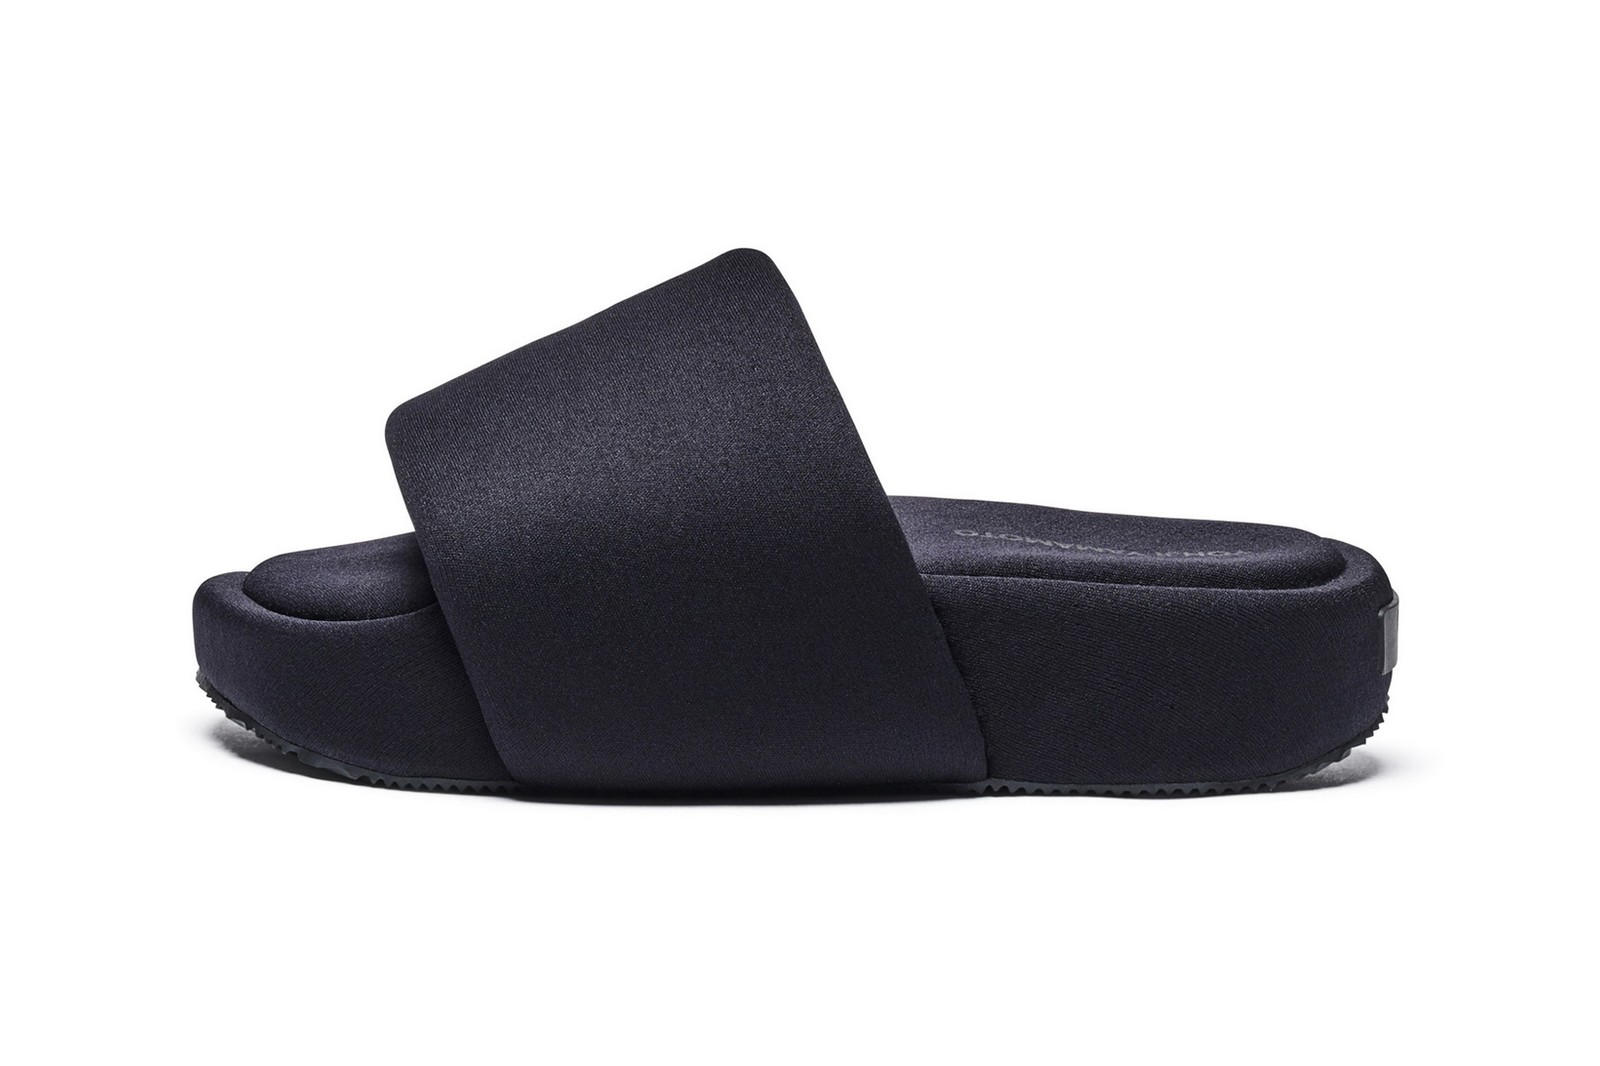 Y-3 Spring Summer 2020 Collection Drop 4 Swim Campaign Adilette Sandals